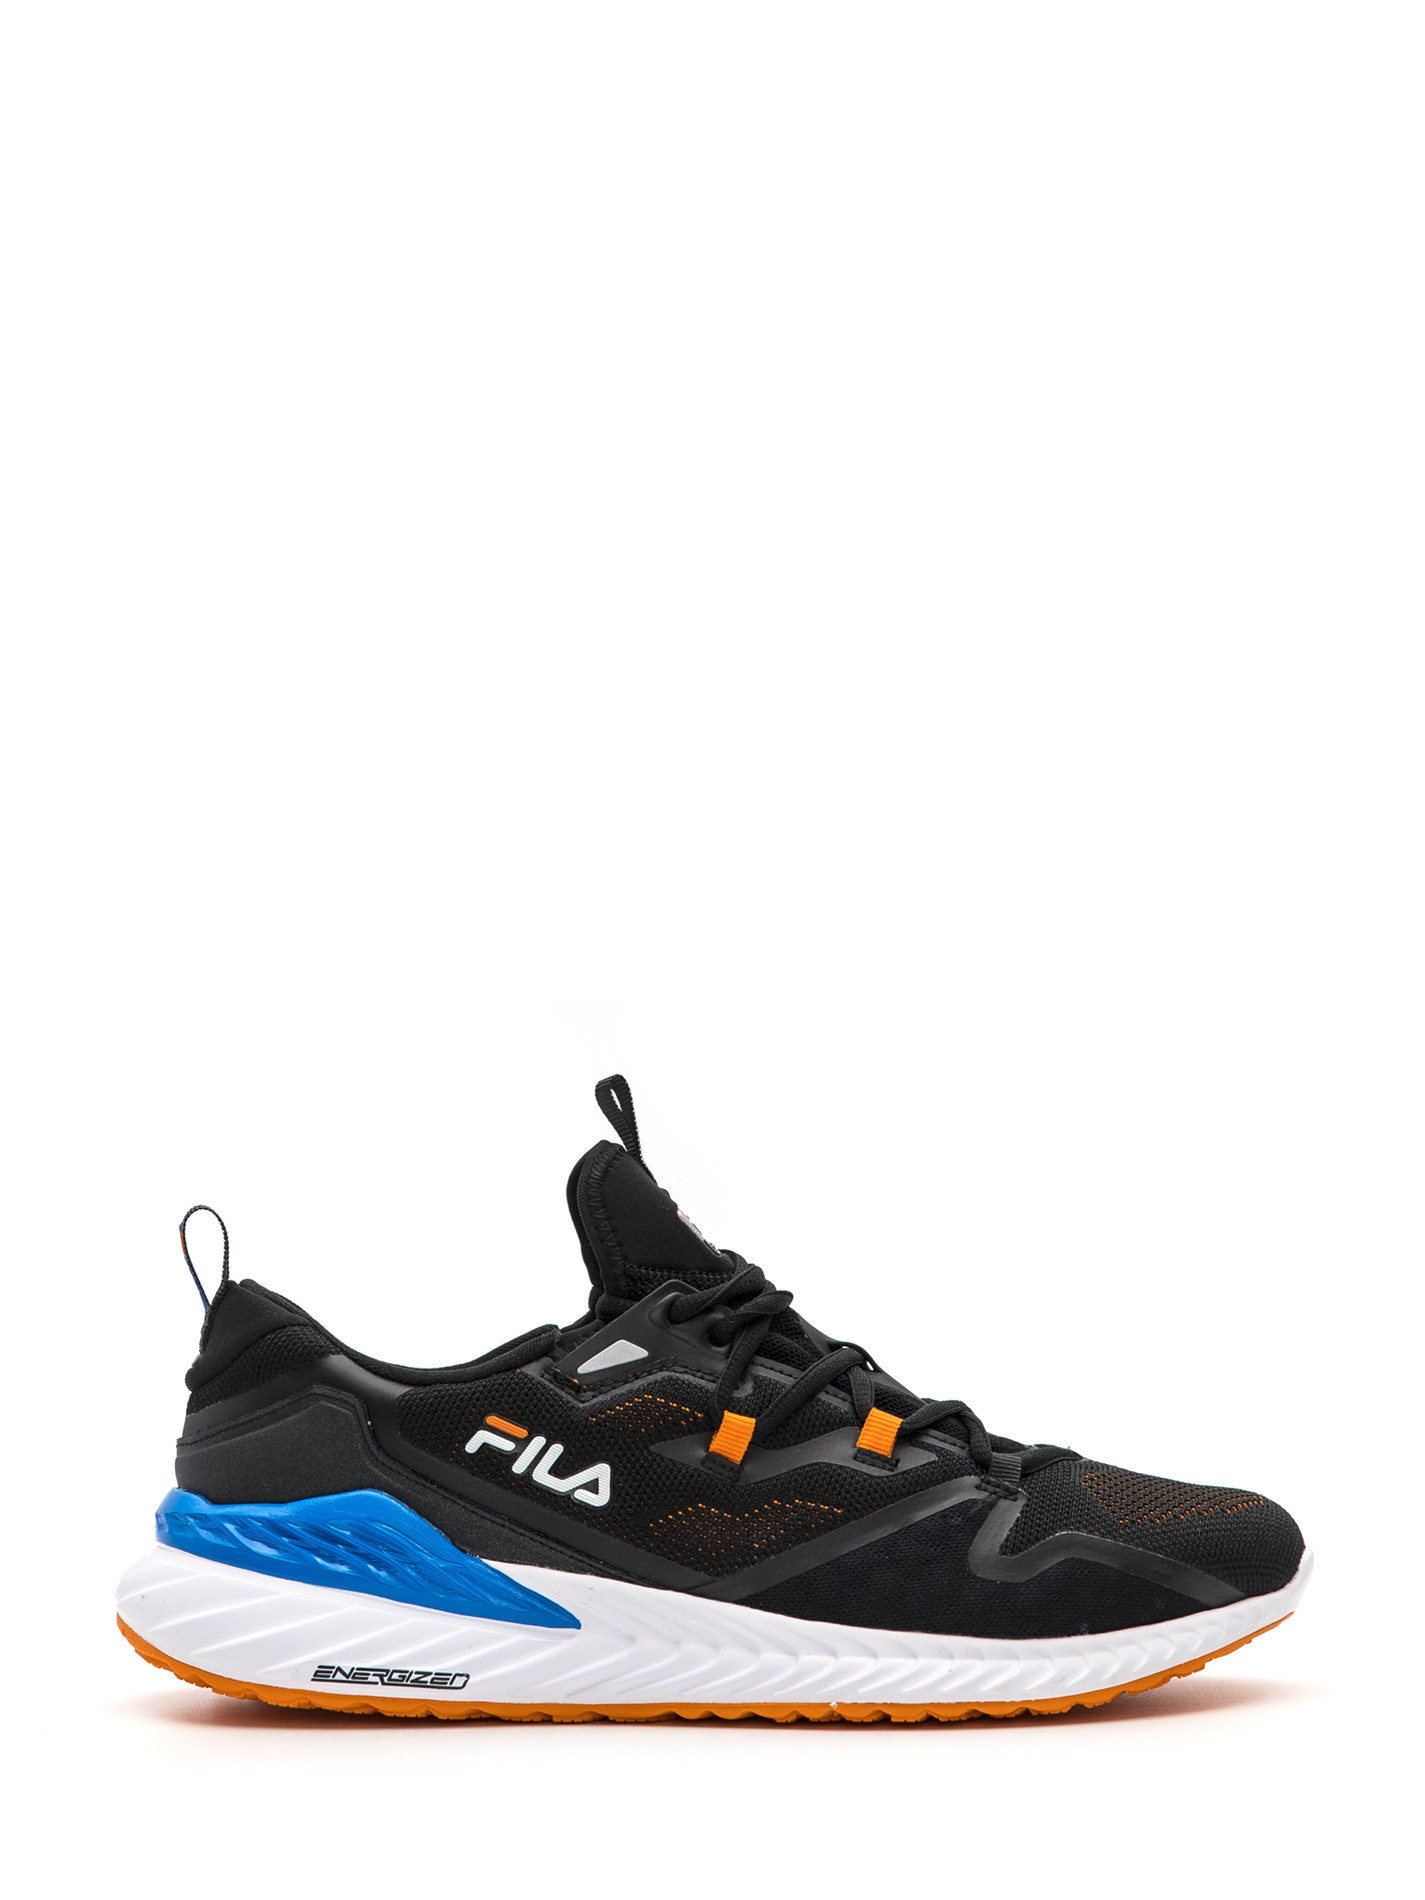 Realmspeed 22 energized - Black